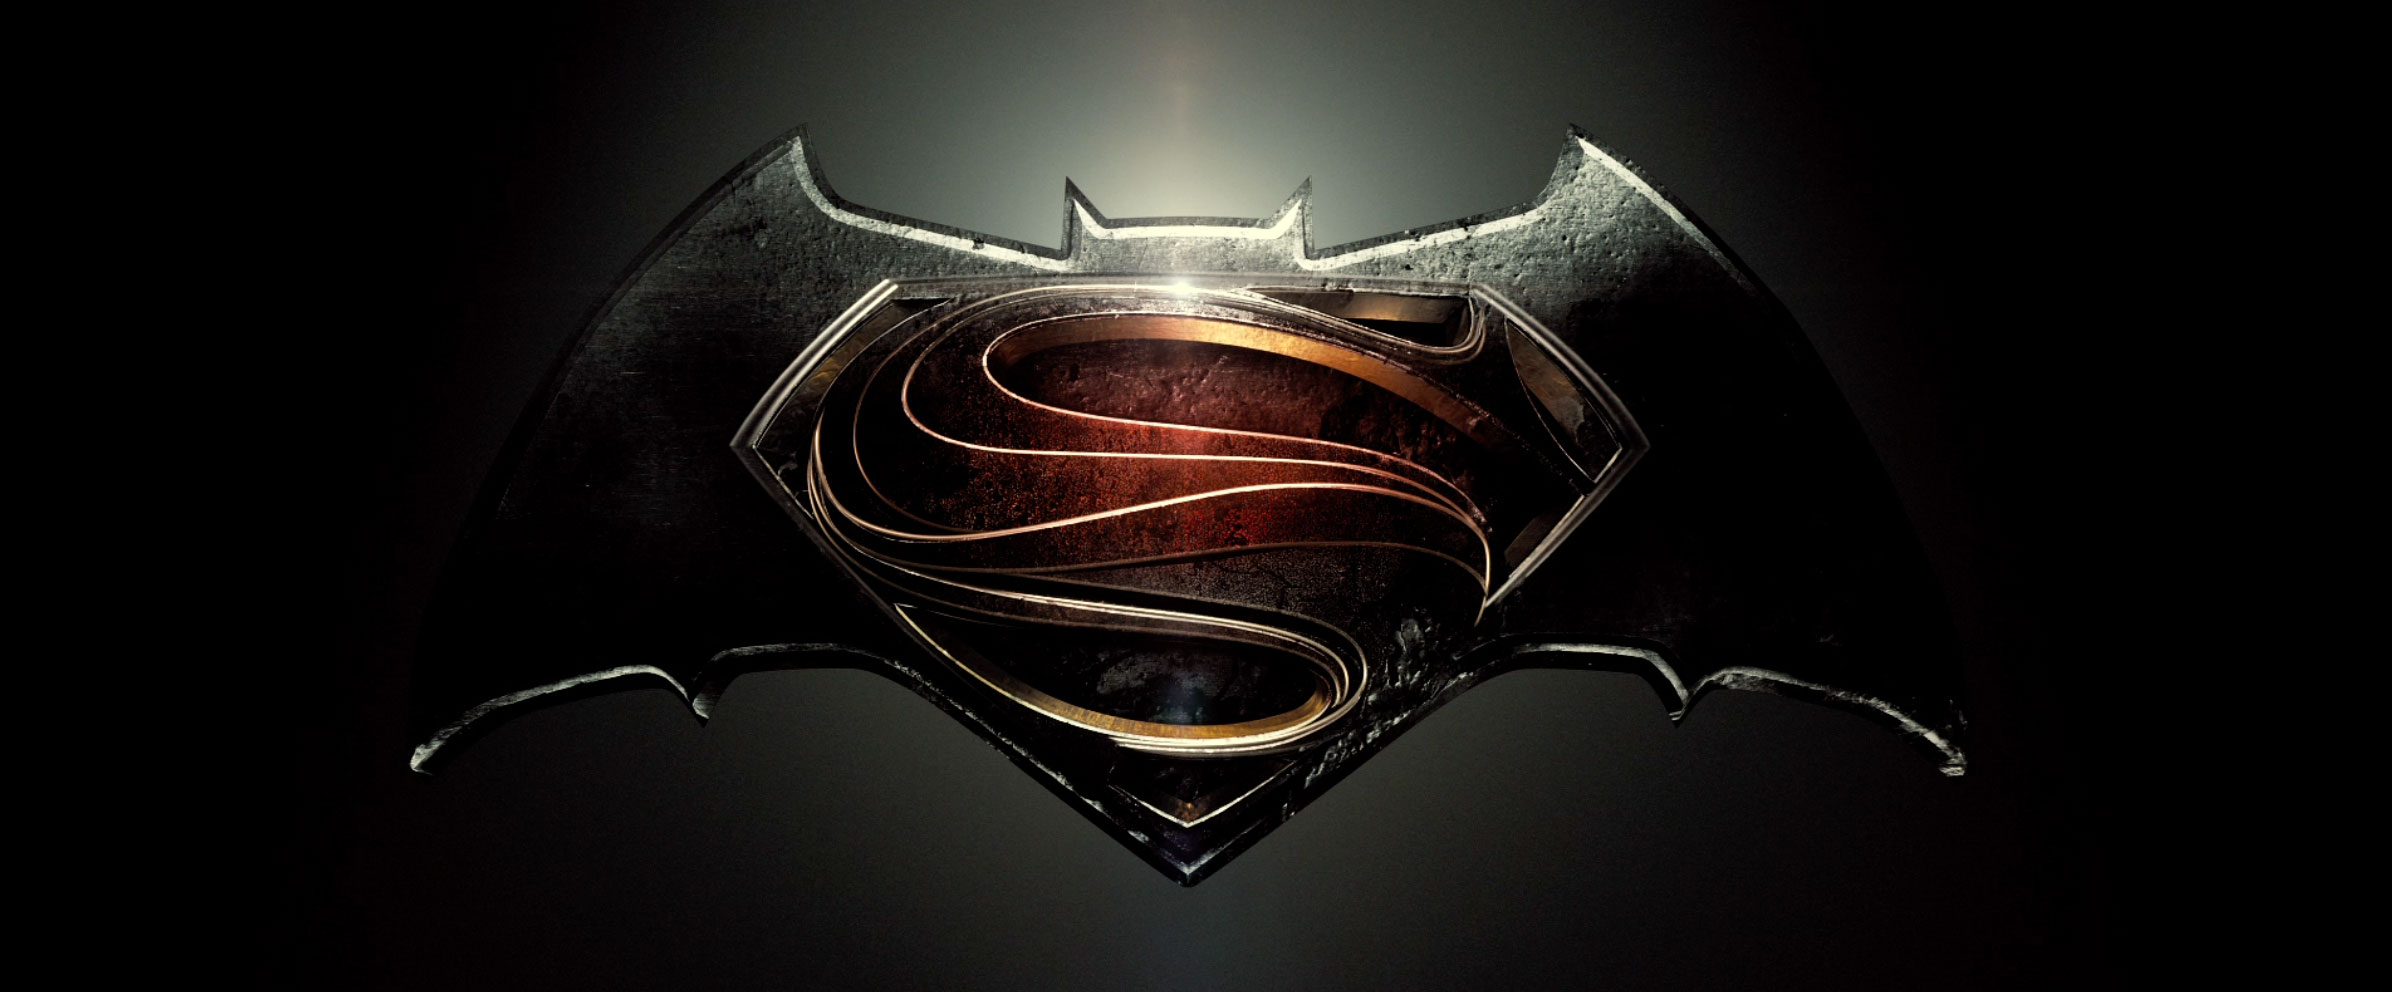 Batman v Superman Empire Magazine Cover Revealed